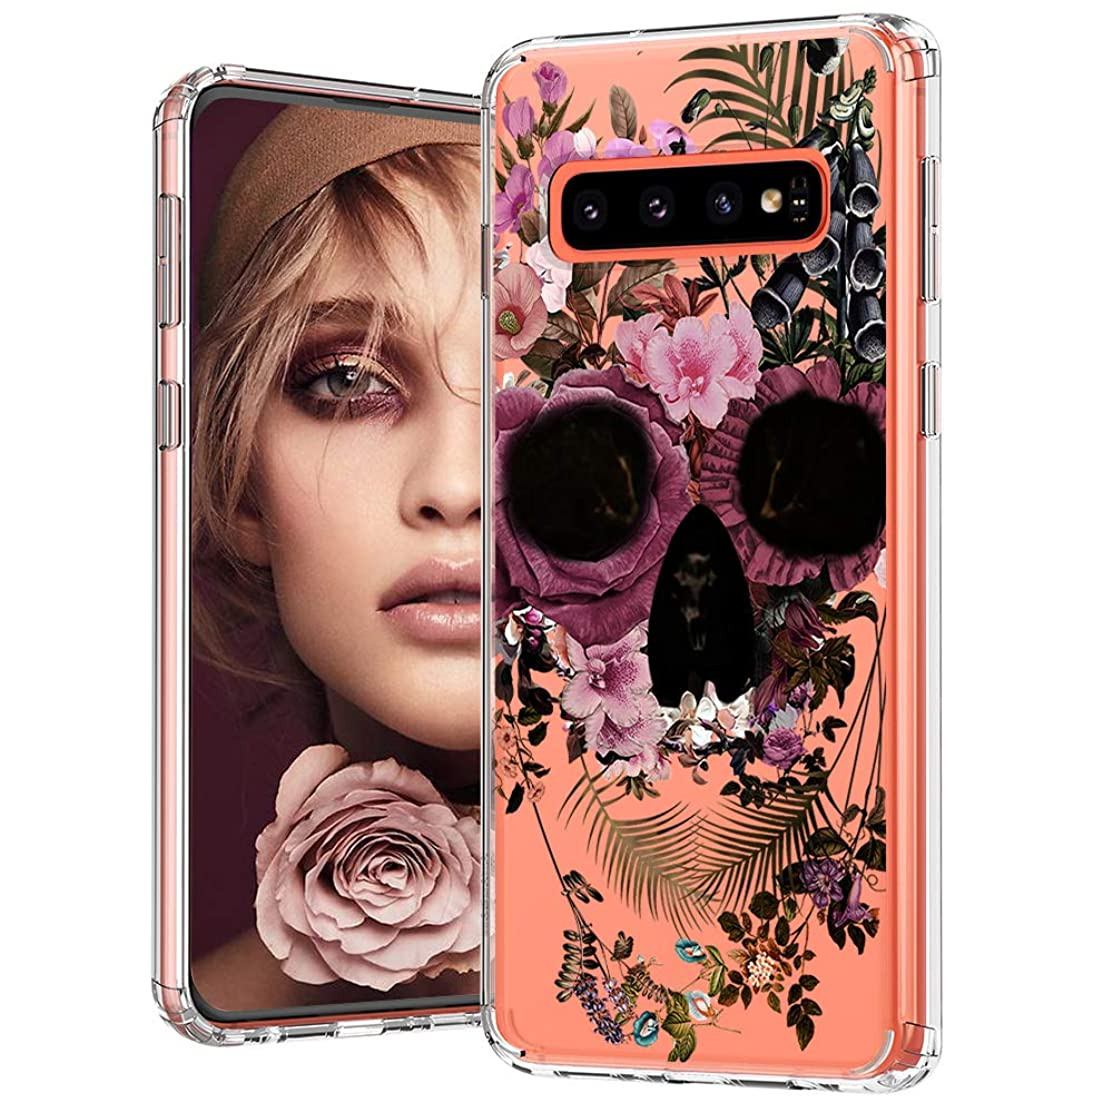 MOSNOVO Galaxy S10 Case, Floral Skull Flower Clear Design Printed Transparent Hard Back case with TPU Bumper Protective Case Cover for Samsung Galaxy S10